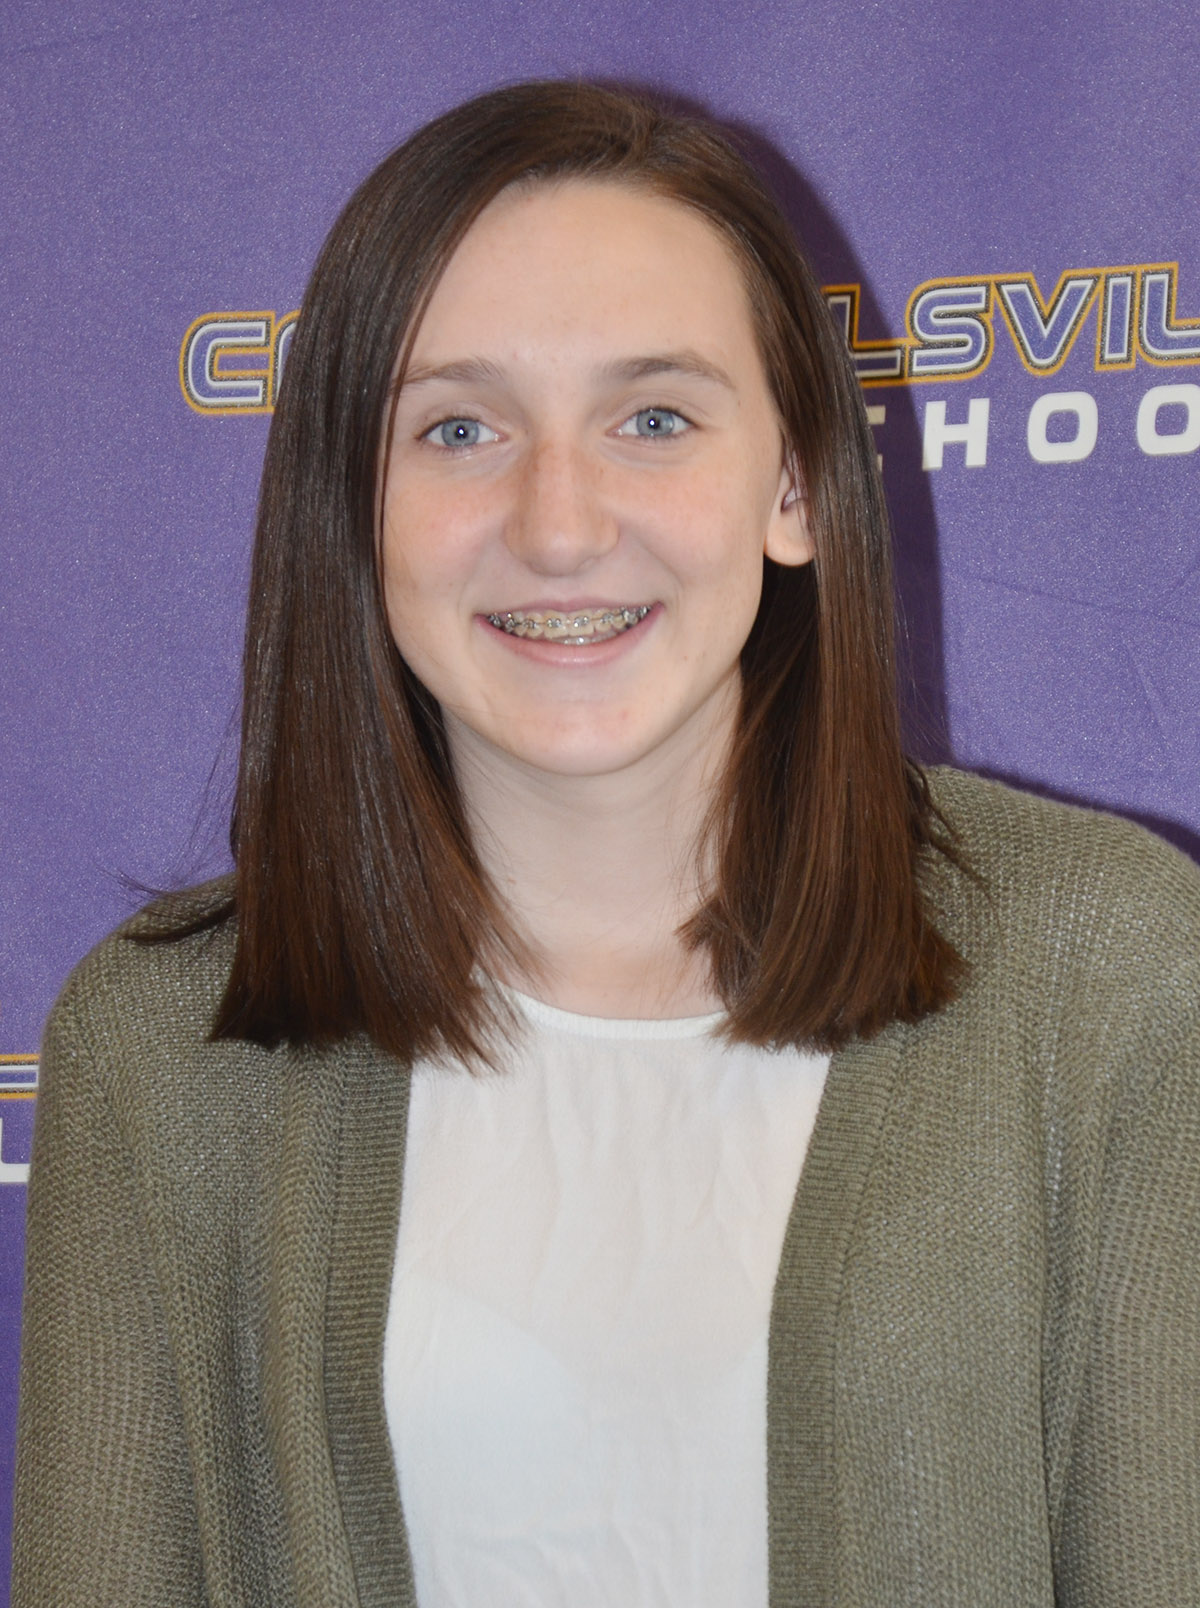 CHS sophomore Zoe McAninch recently learned that she will compete in the infographic competition at the state STLP competition next month. At the regional showcase in November, she was also chosen to serve on the social media service team.